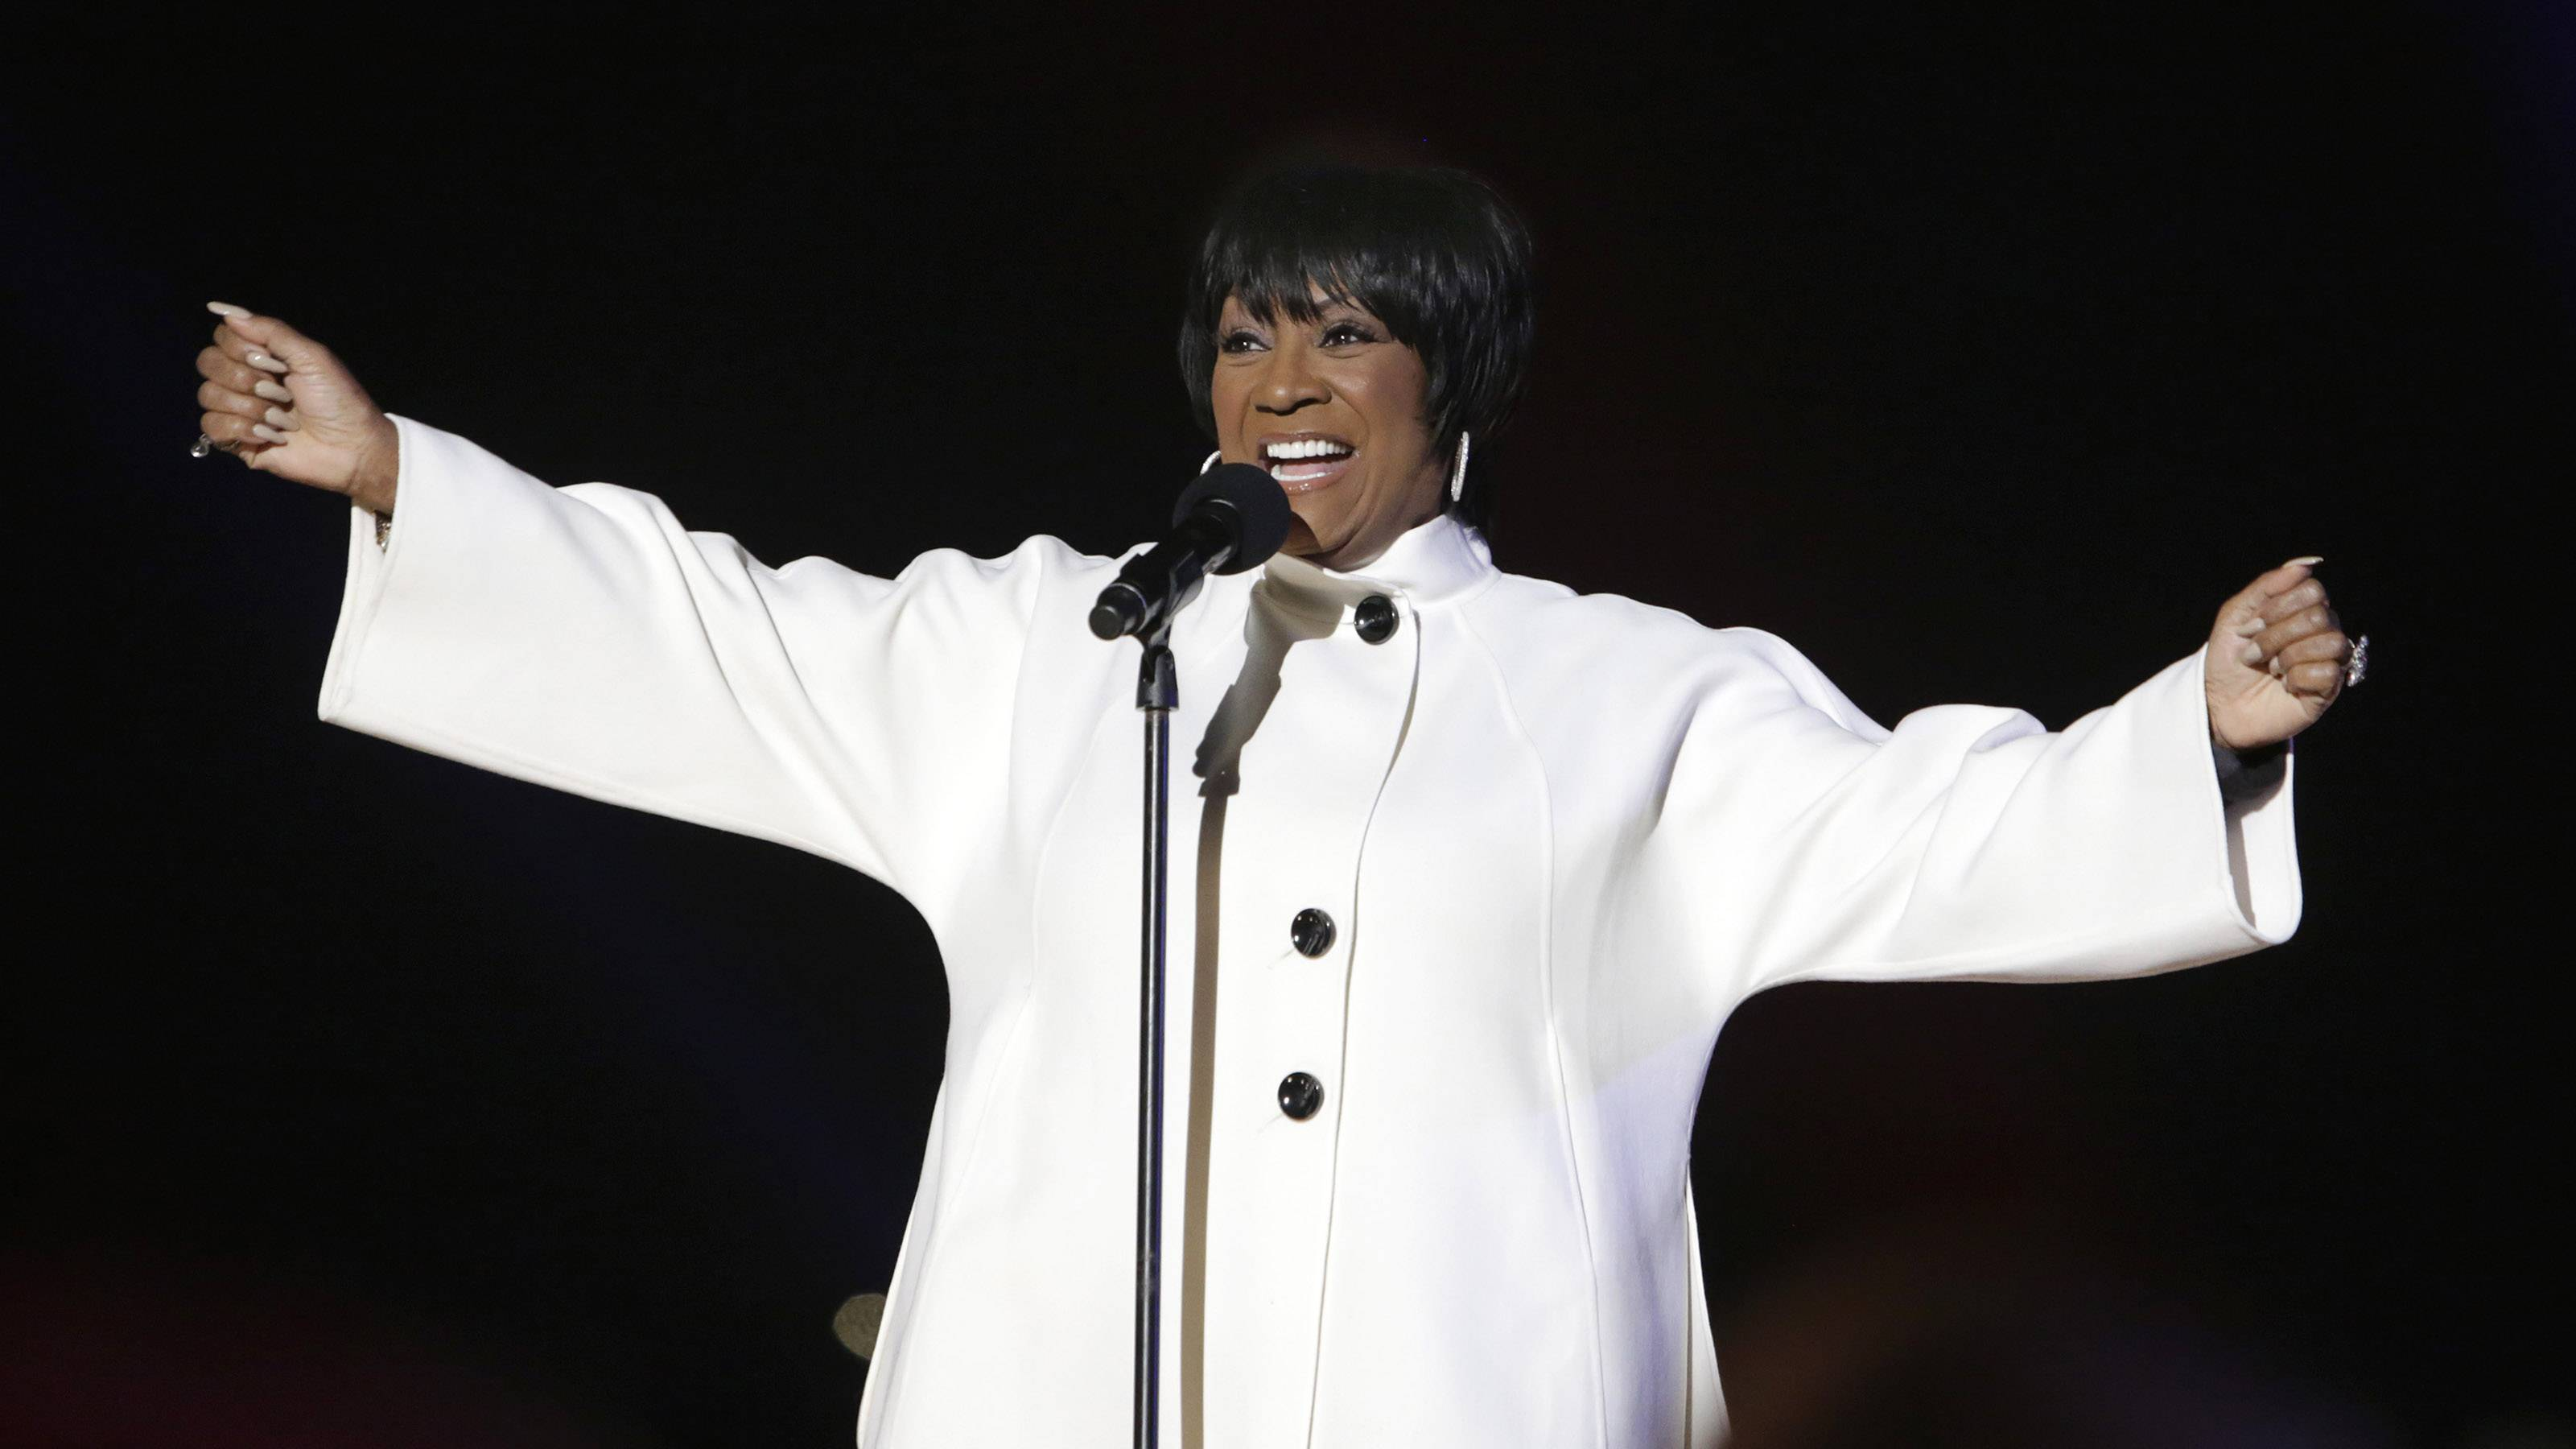 DIVA-licious  - All you need to really remember at the end of the day is that Patti LaBelle is a DIVA! I mean, she's Mariah Carey's godmother for goodness' sake. And Mariah is the princess of all divas, right under Patti. (Photo: Chris Kleponis-Pool/Getty Images)